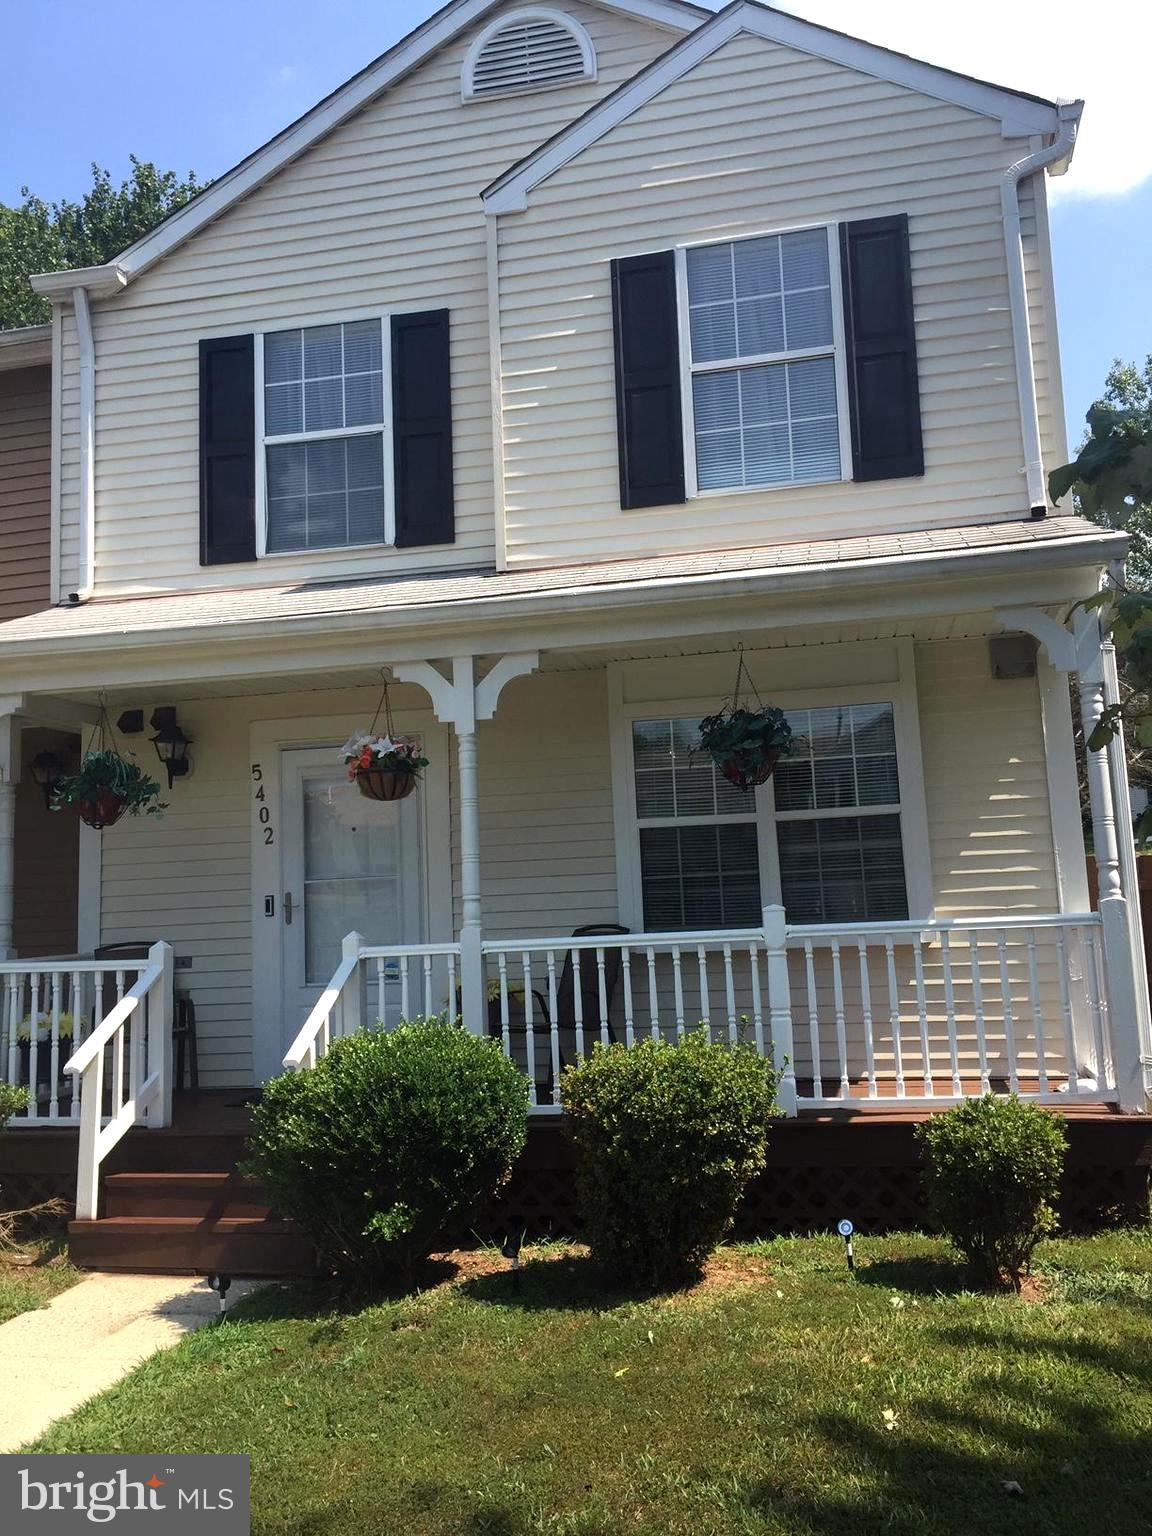 SPACIOUS END UNIT TOWNHOUSE  3BEDROOMS W/ 2 FULL BATHS W/ HALF BATH W/  LARGE PORCH W/ FENCED BACK Y